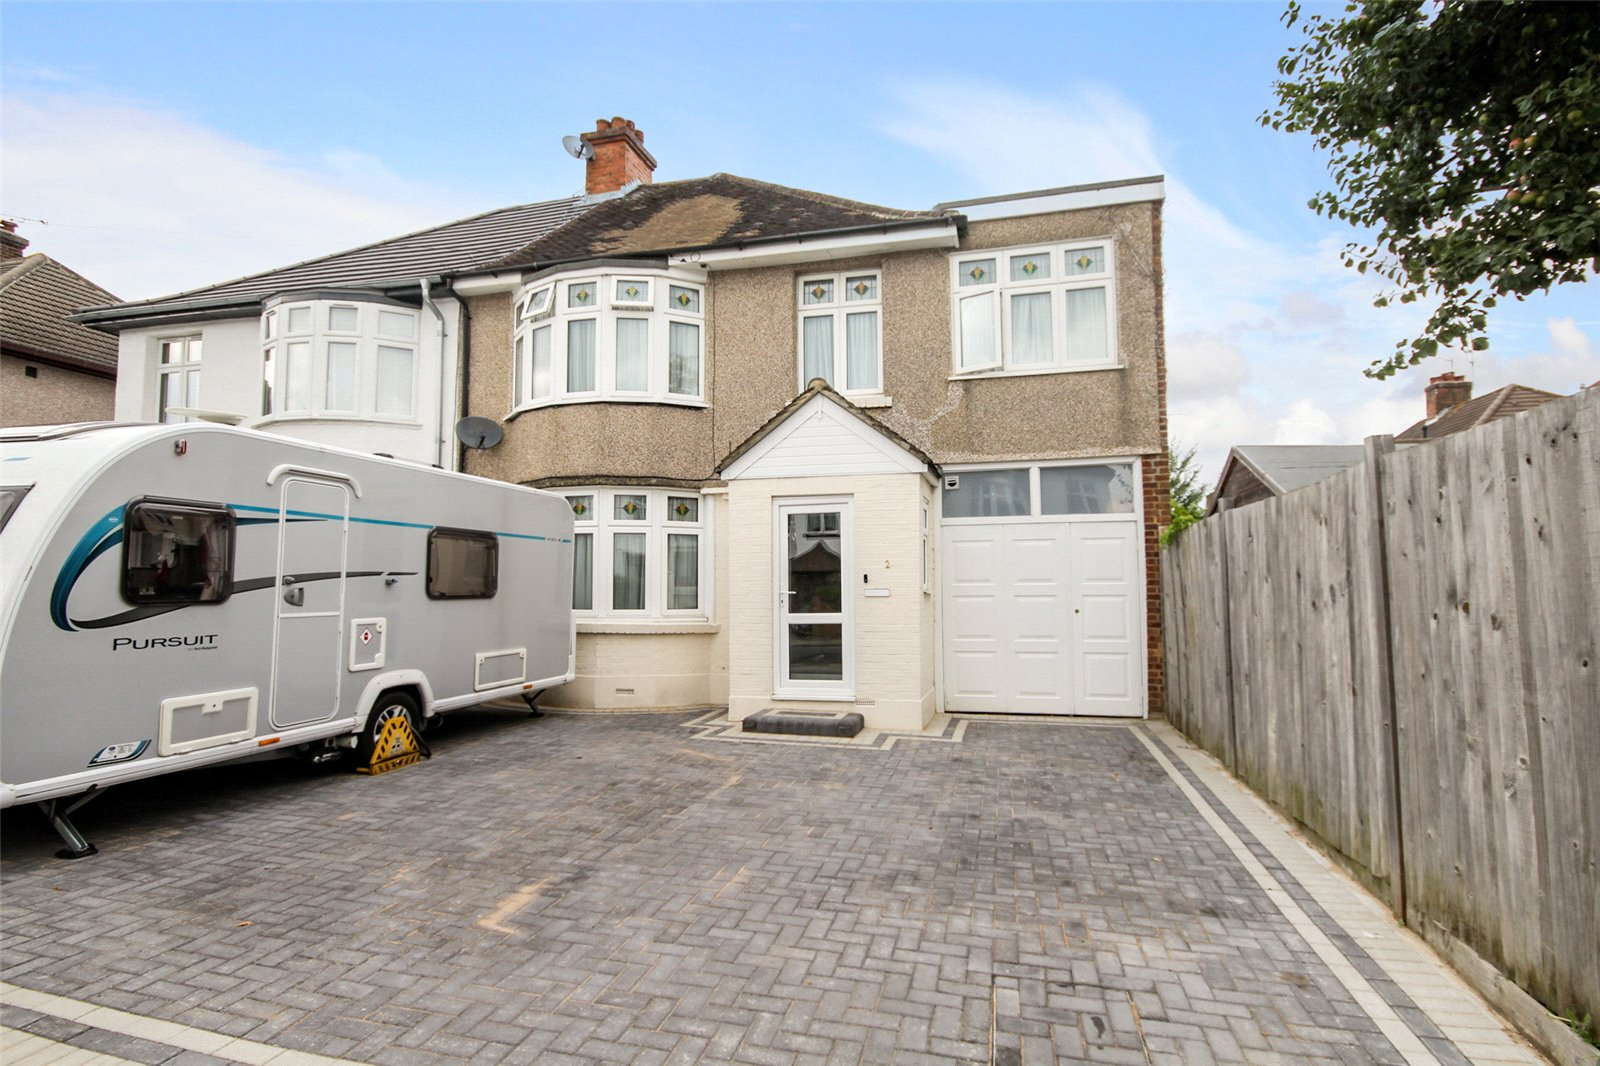 St. Quentin Road, South Welling, Kent, DA16